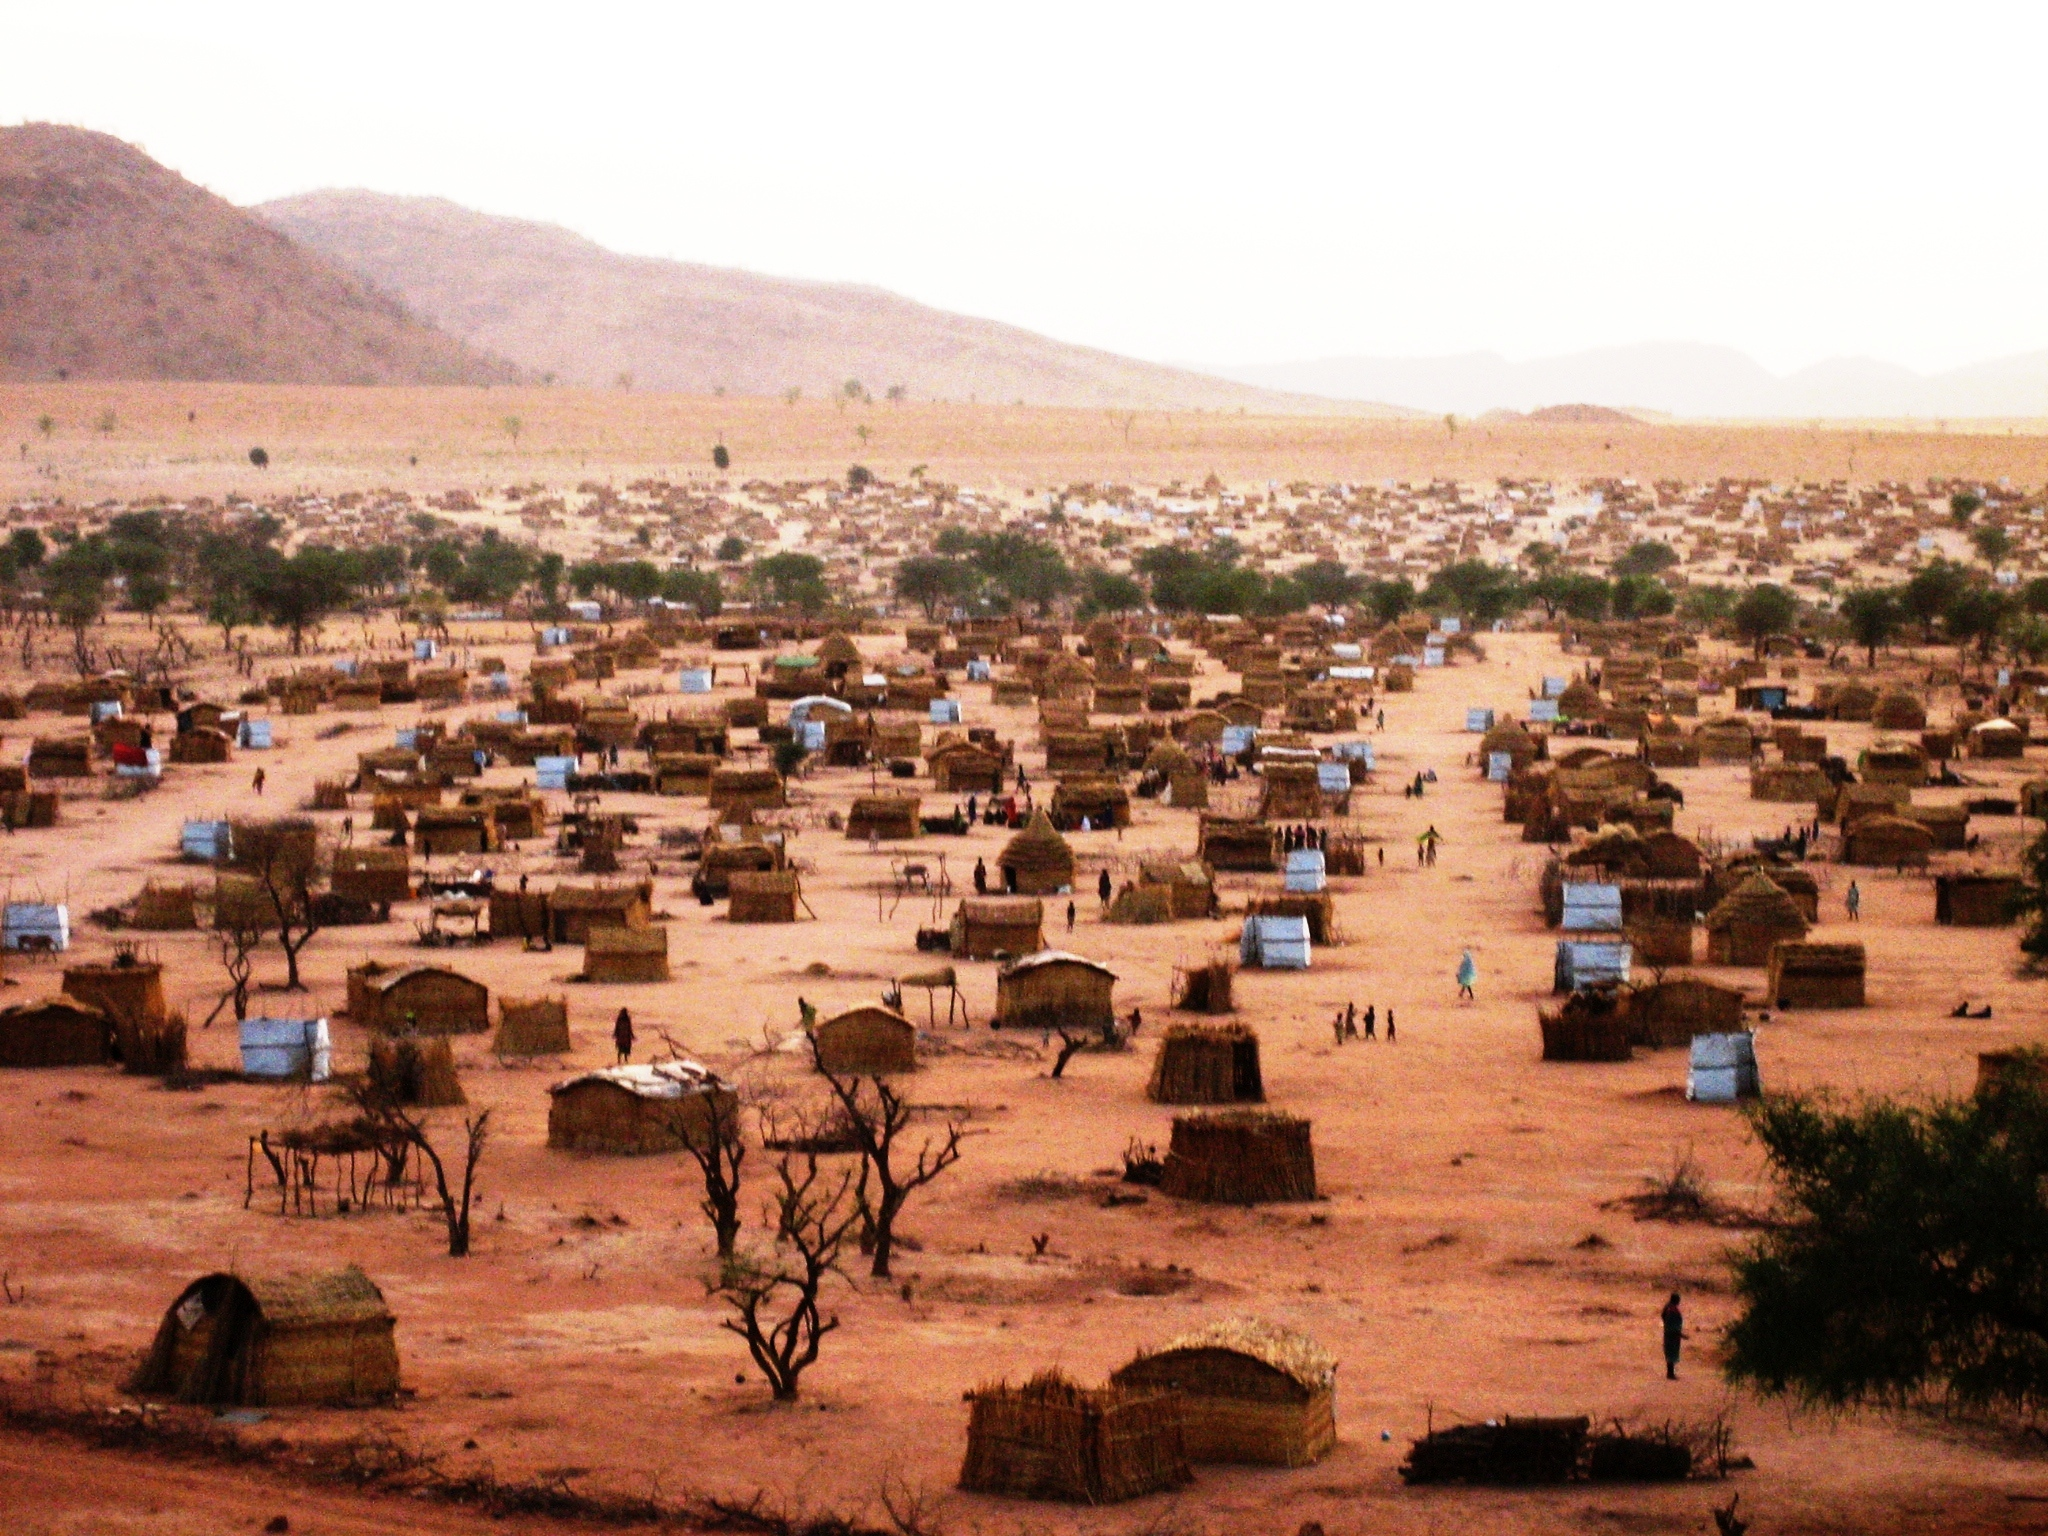 Koloma, a site for displaced people near Goz Beida.